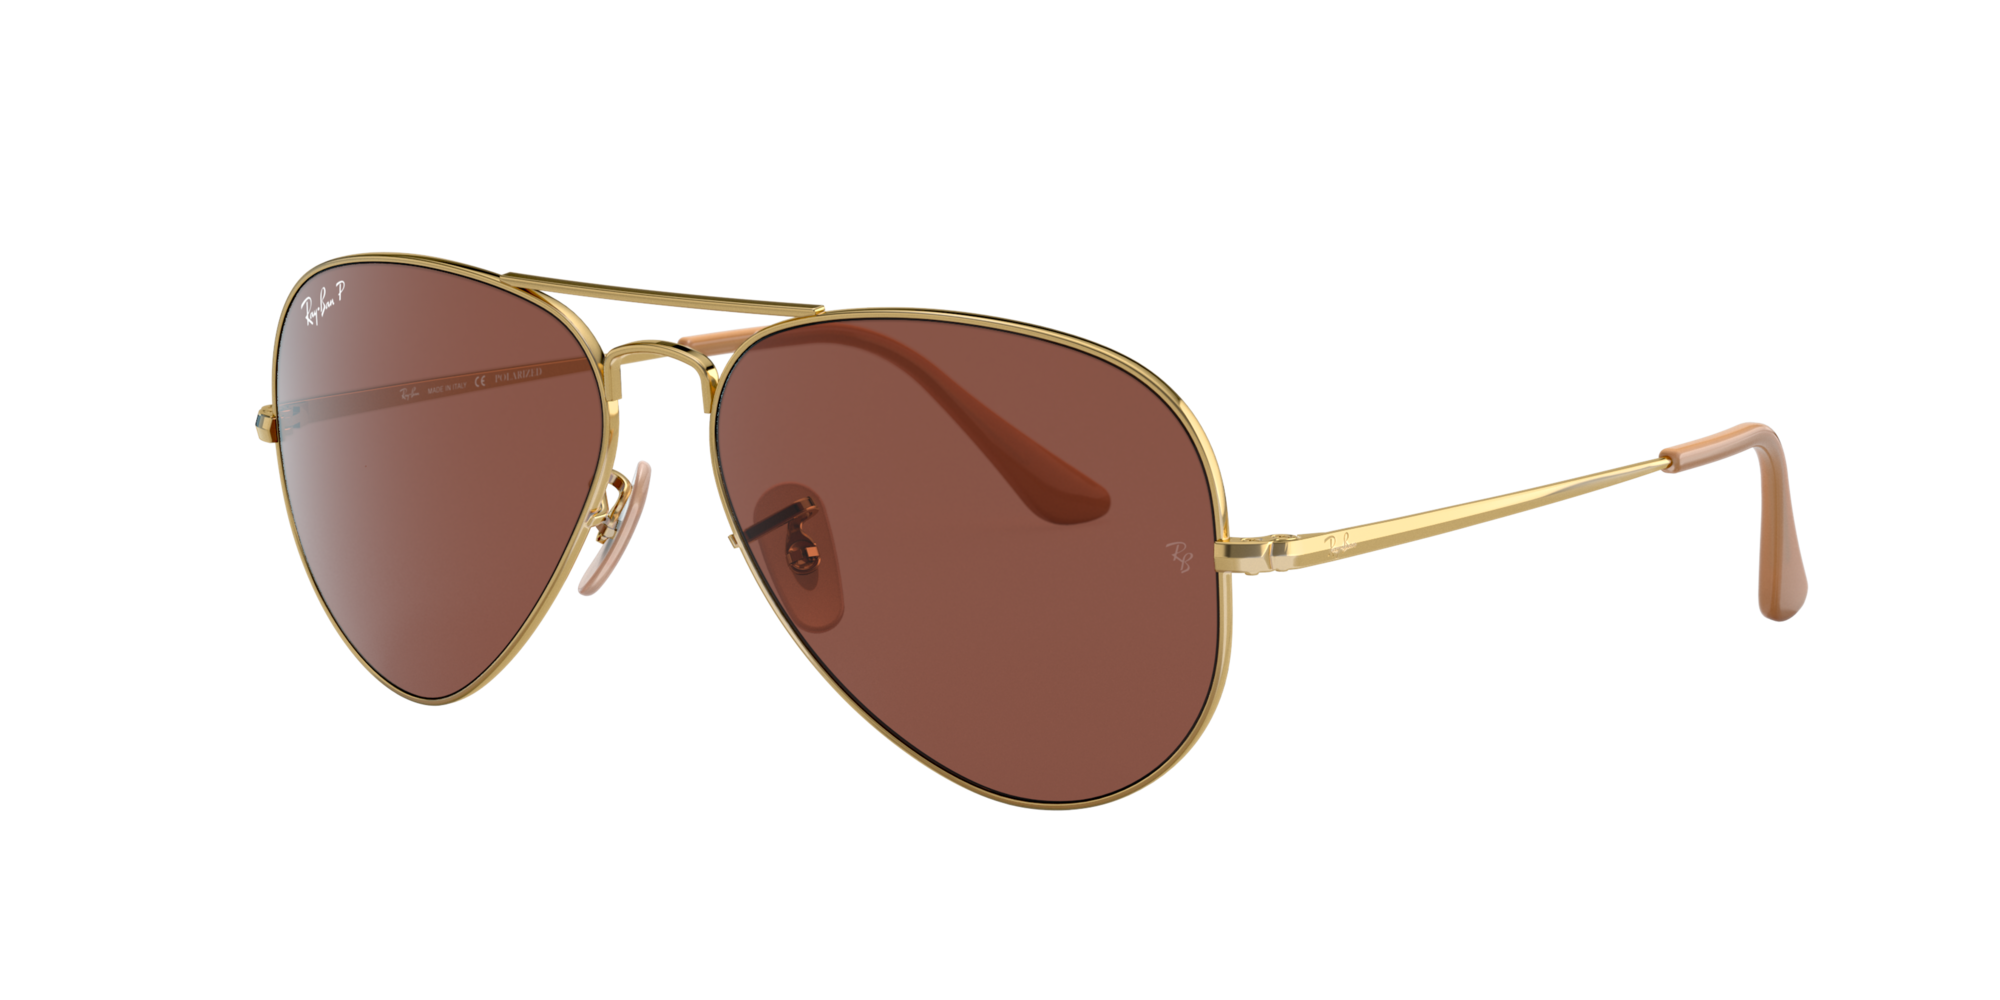 Ray Ban Unisex  RB3689 -  Frame color: Gold, Lens color: Bronze, Size 55-14/140